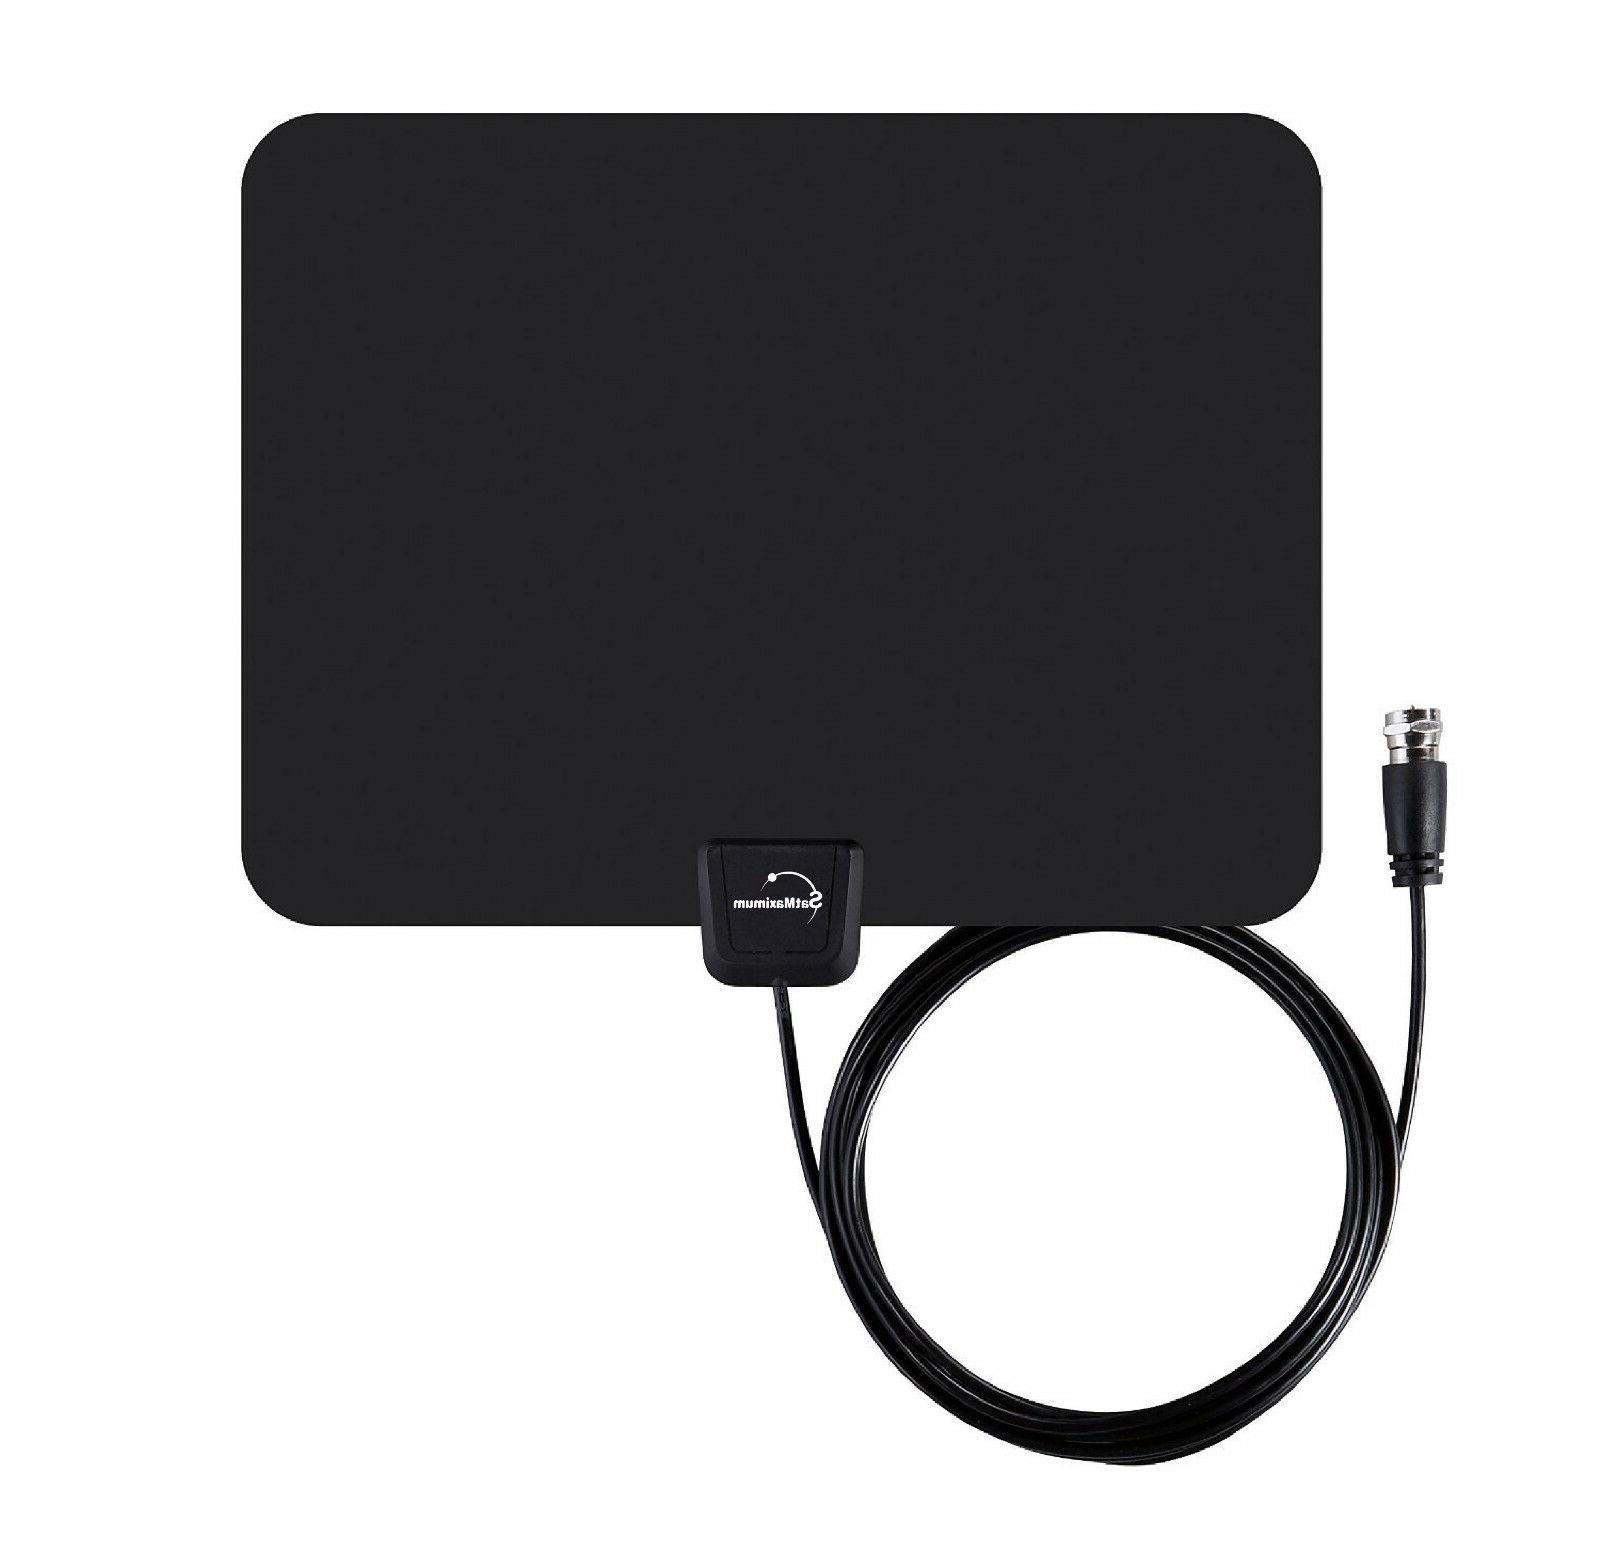 digital high definition ultra thin flat antenna